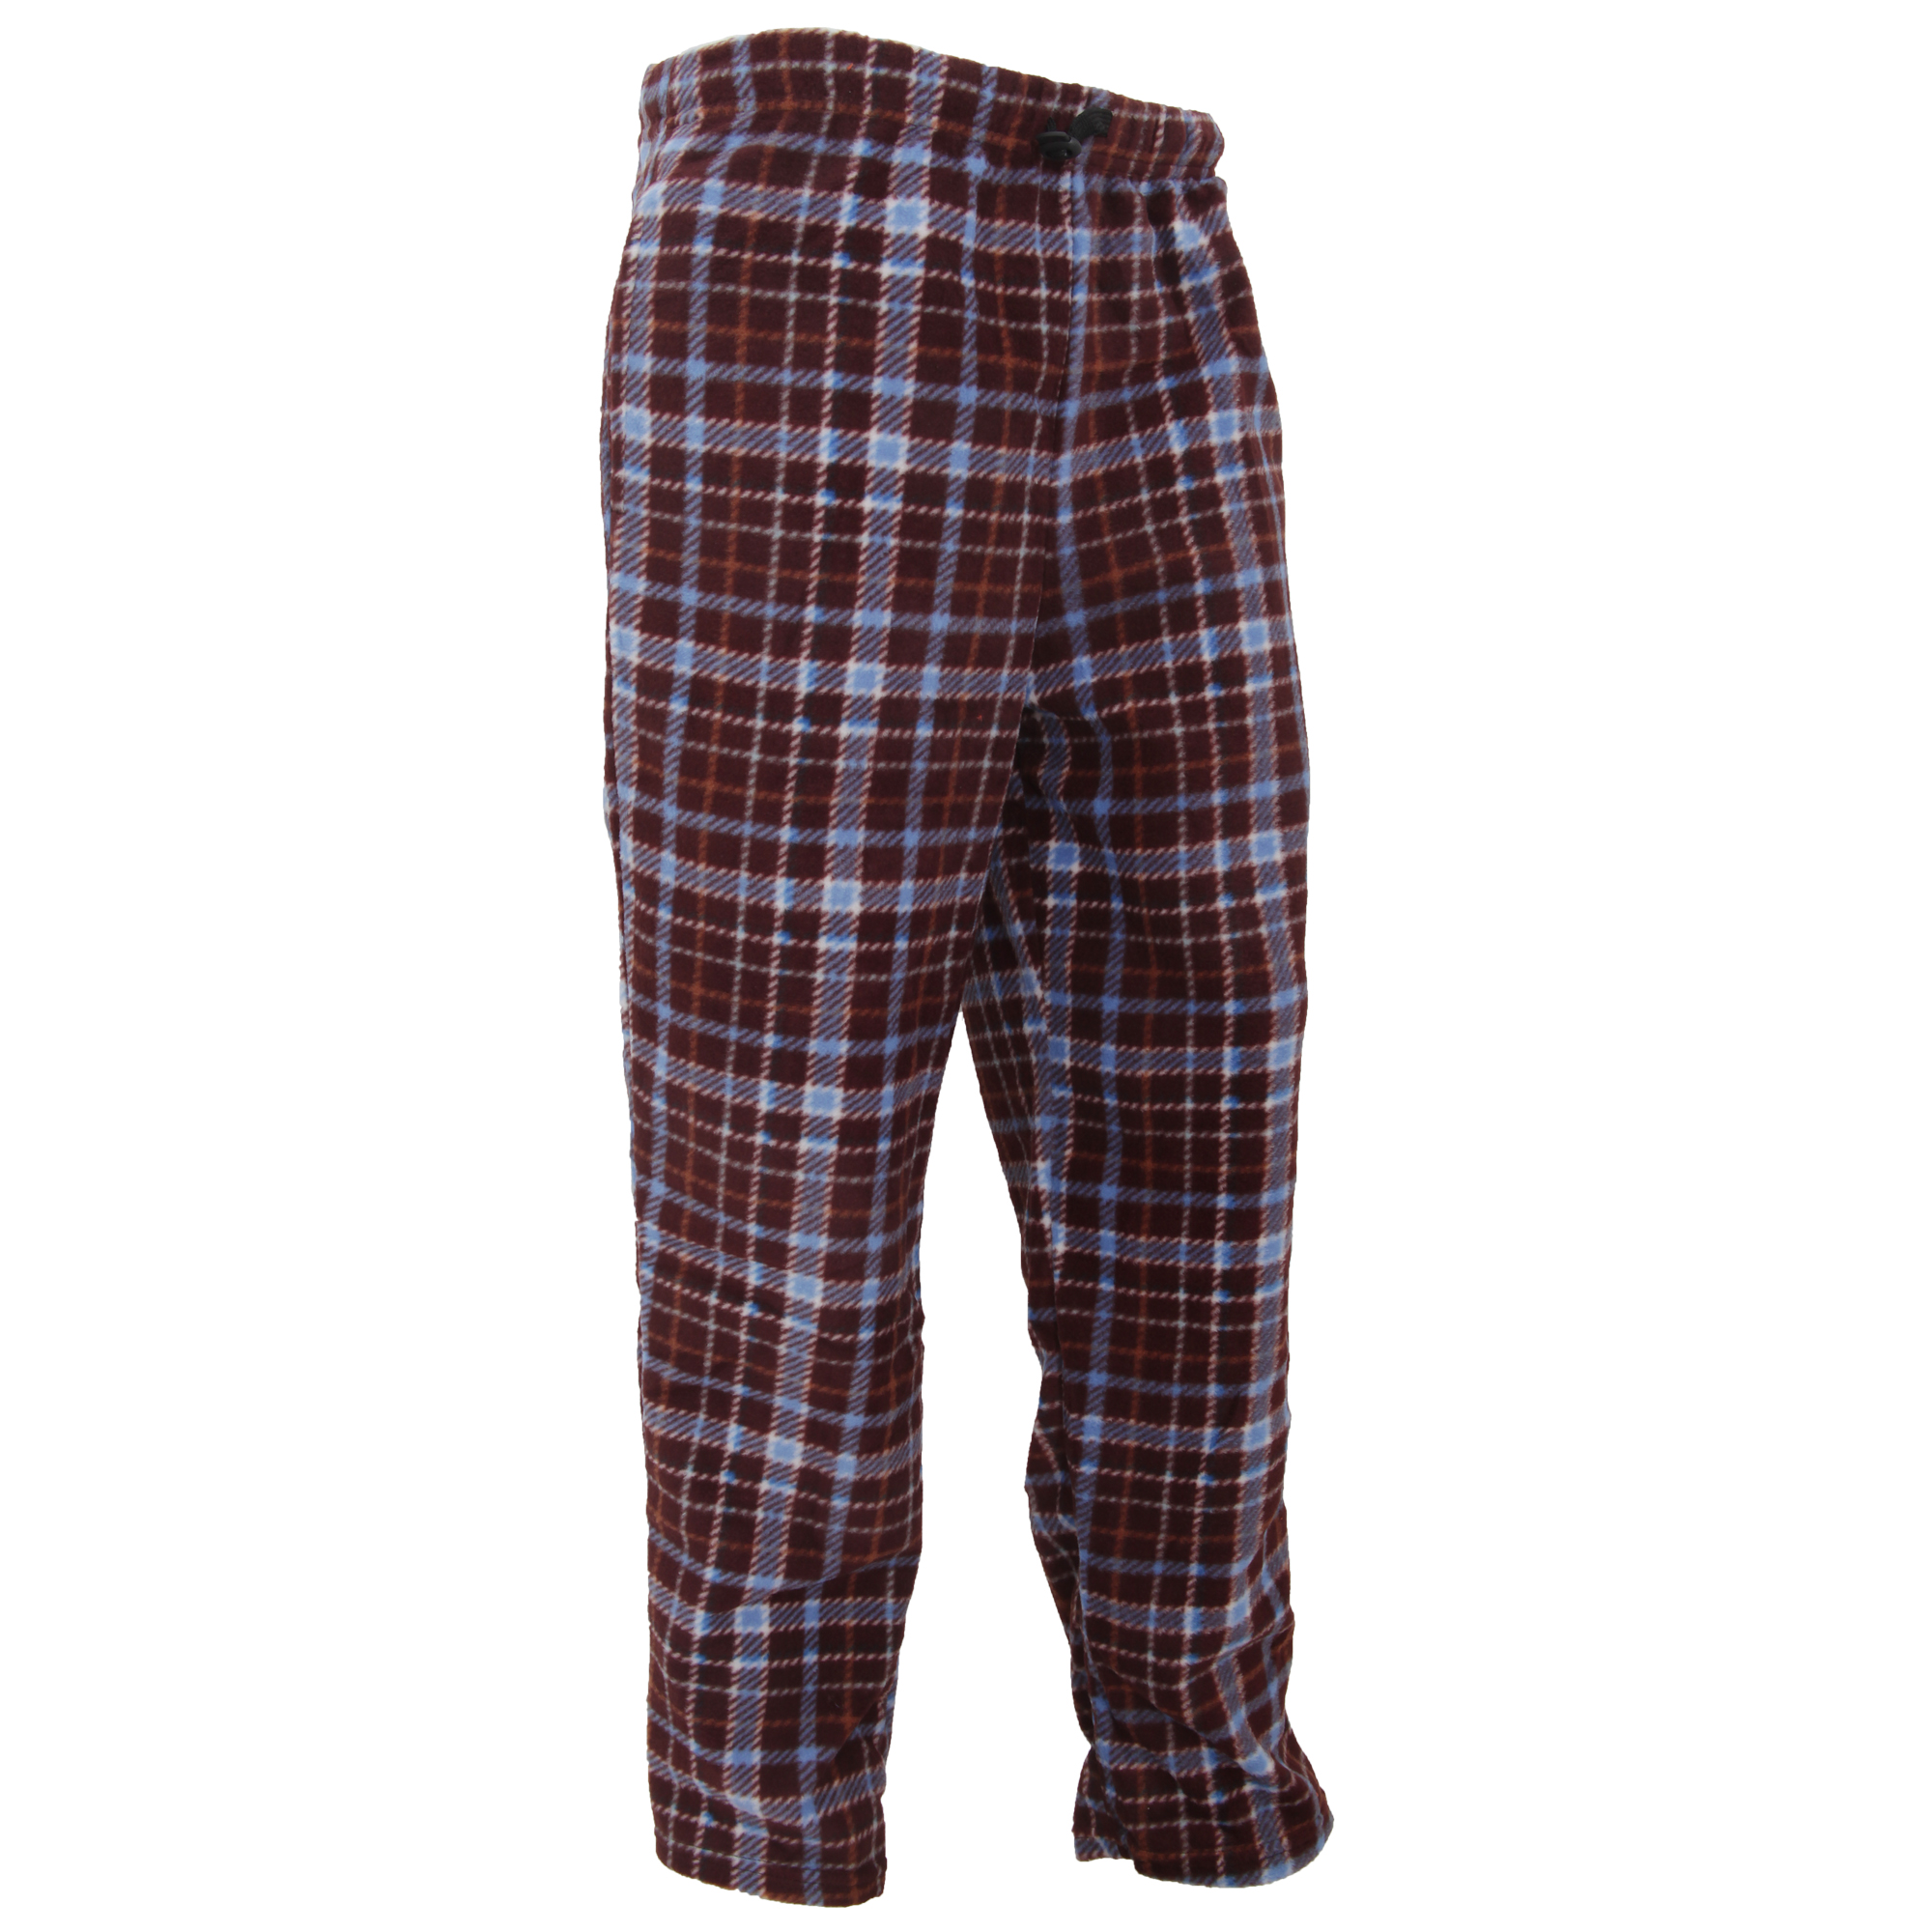 Find great deals on eBay for pyjamas pants men. Shop with confidence.